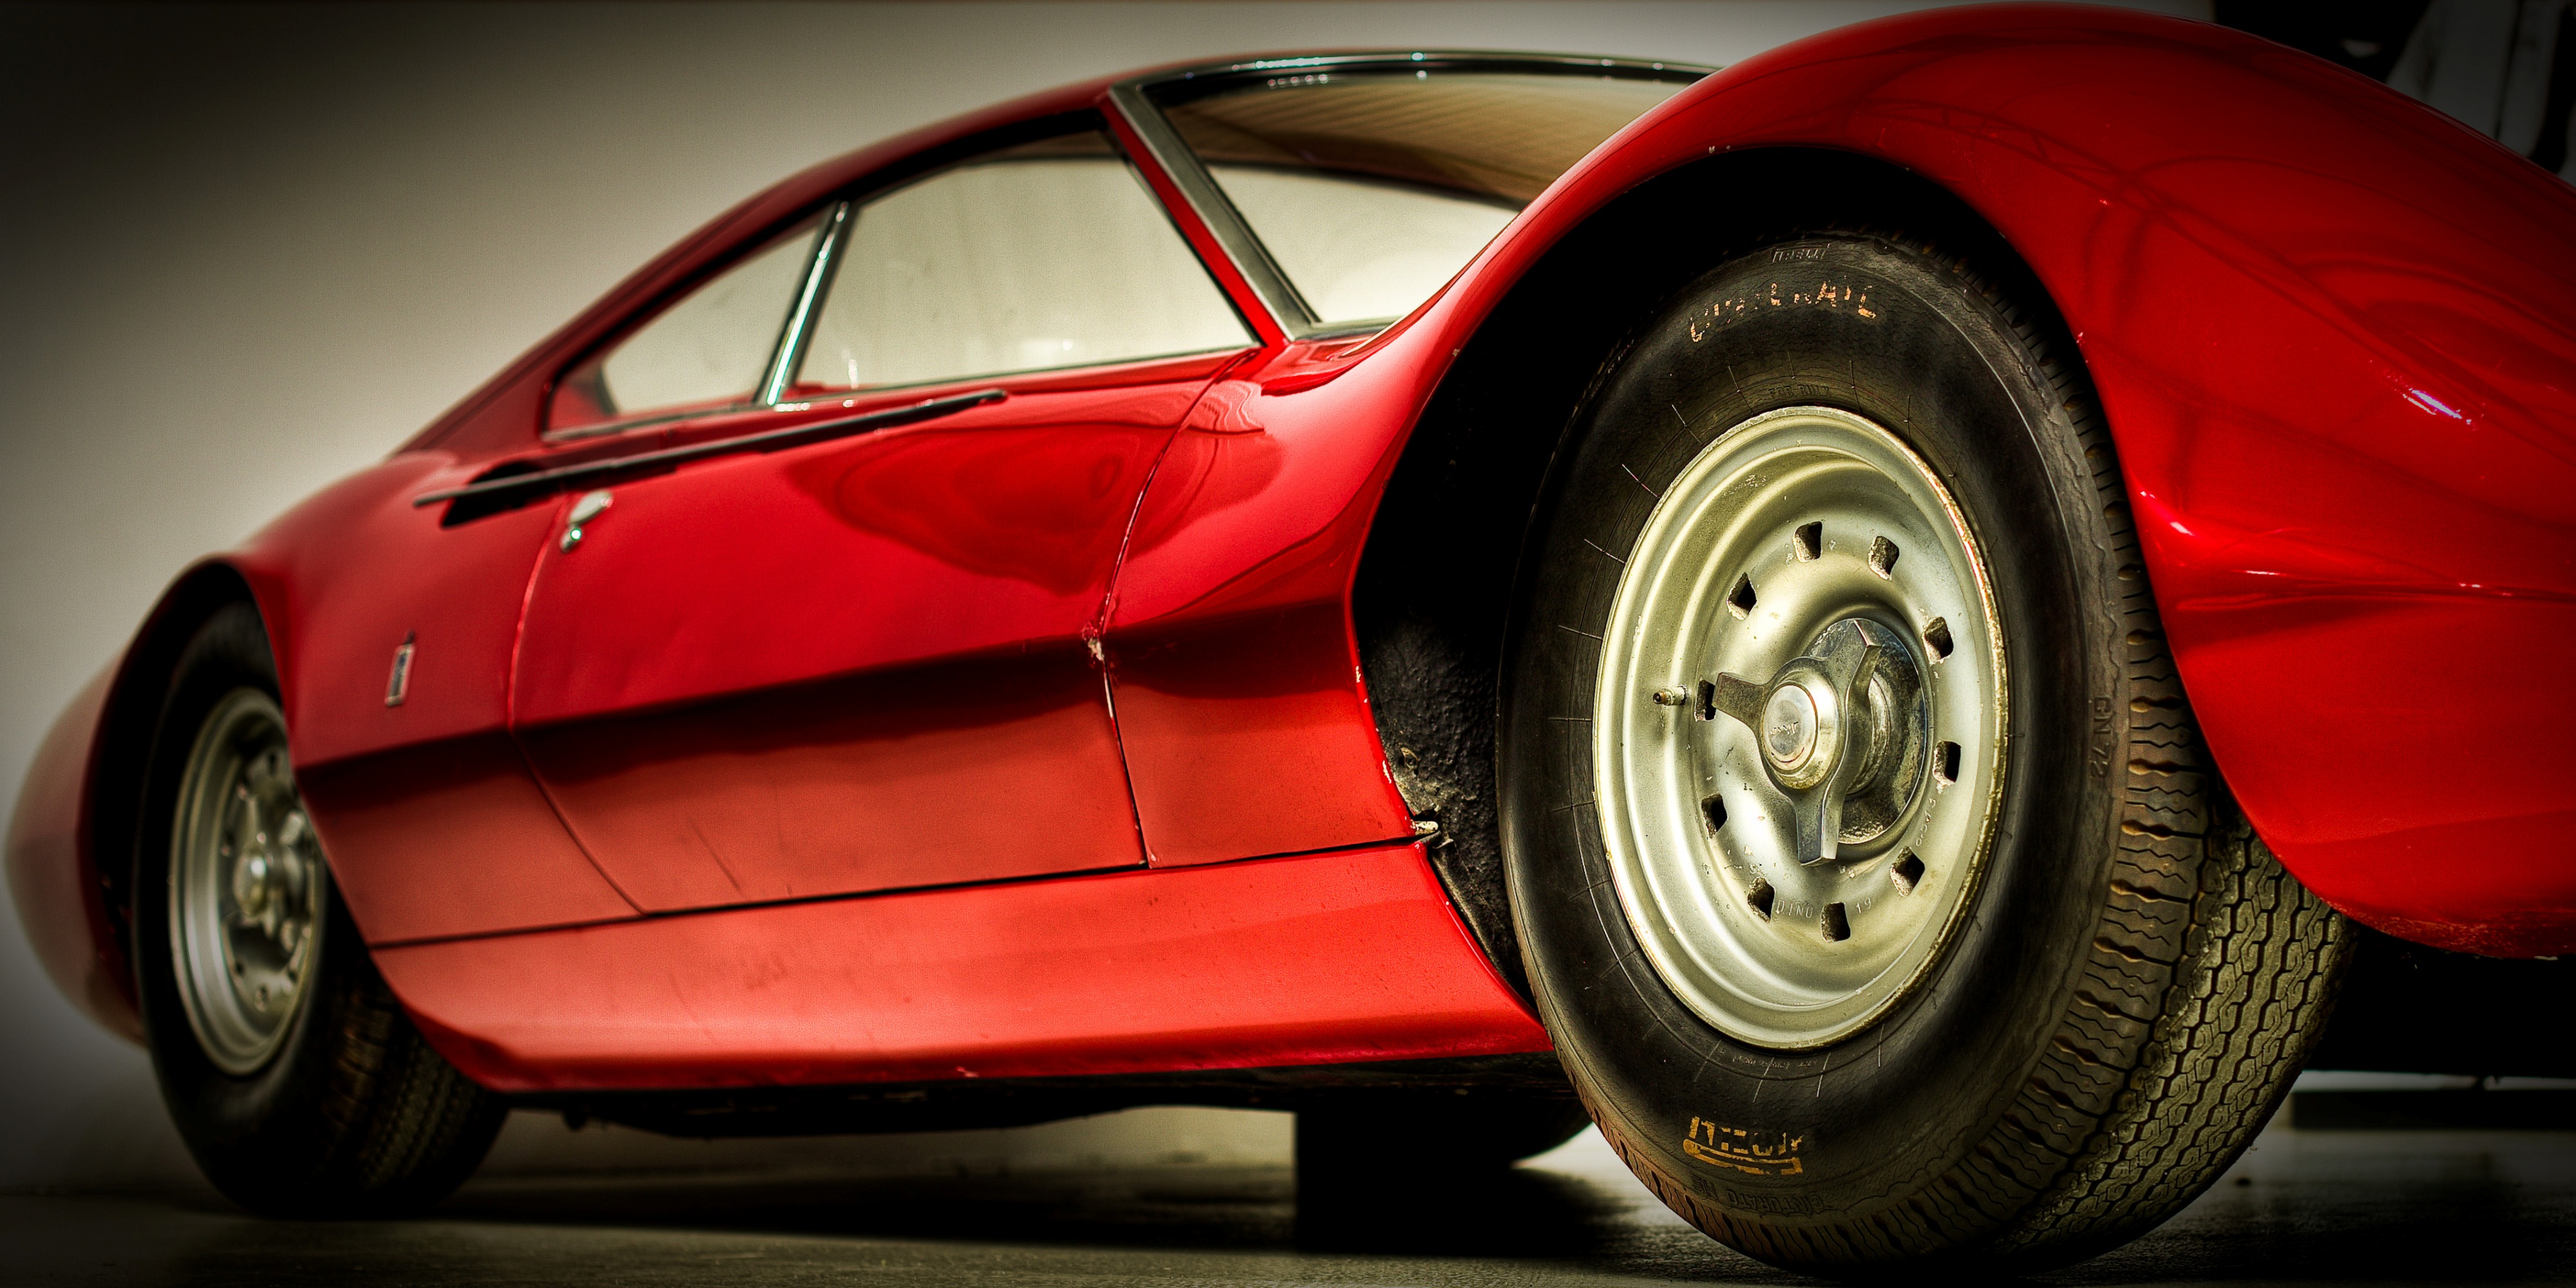 classic_sports_car_red-other